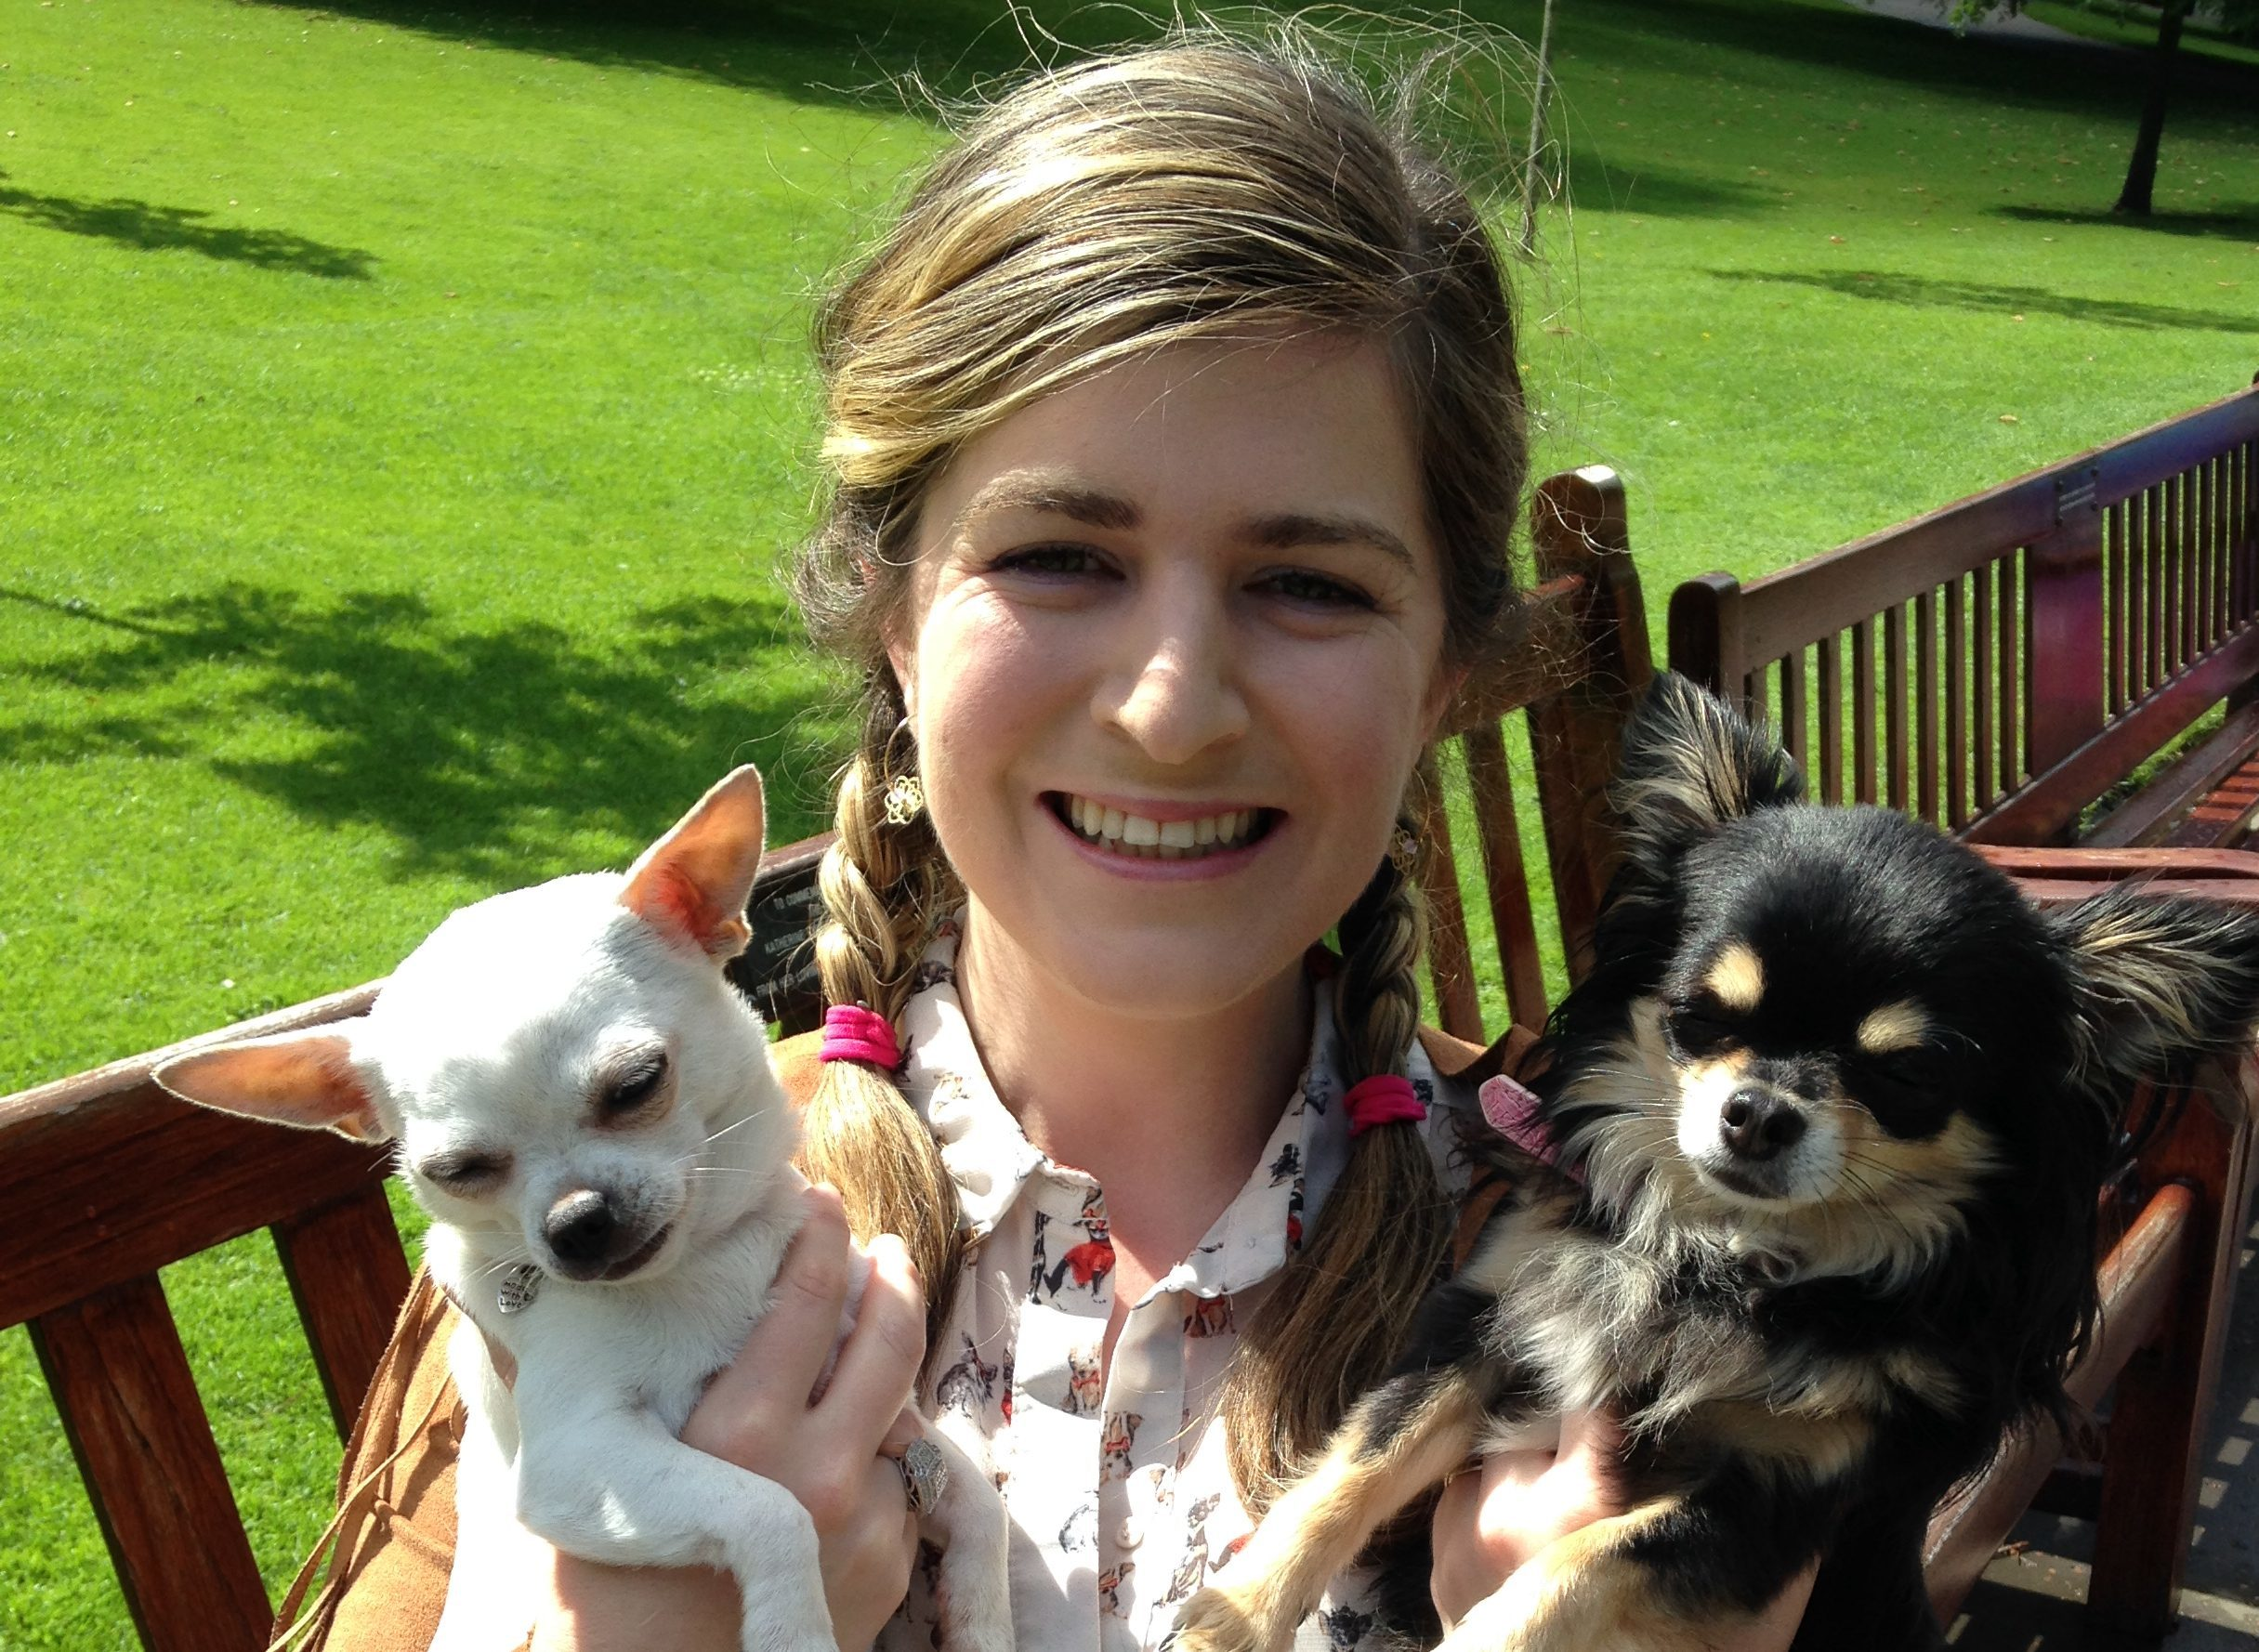 Tanya with chihuahuas Bee (left) and Ama